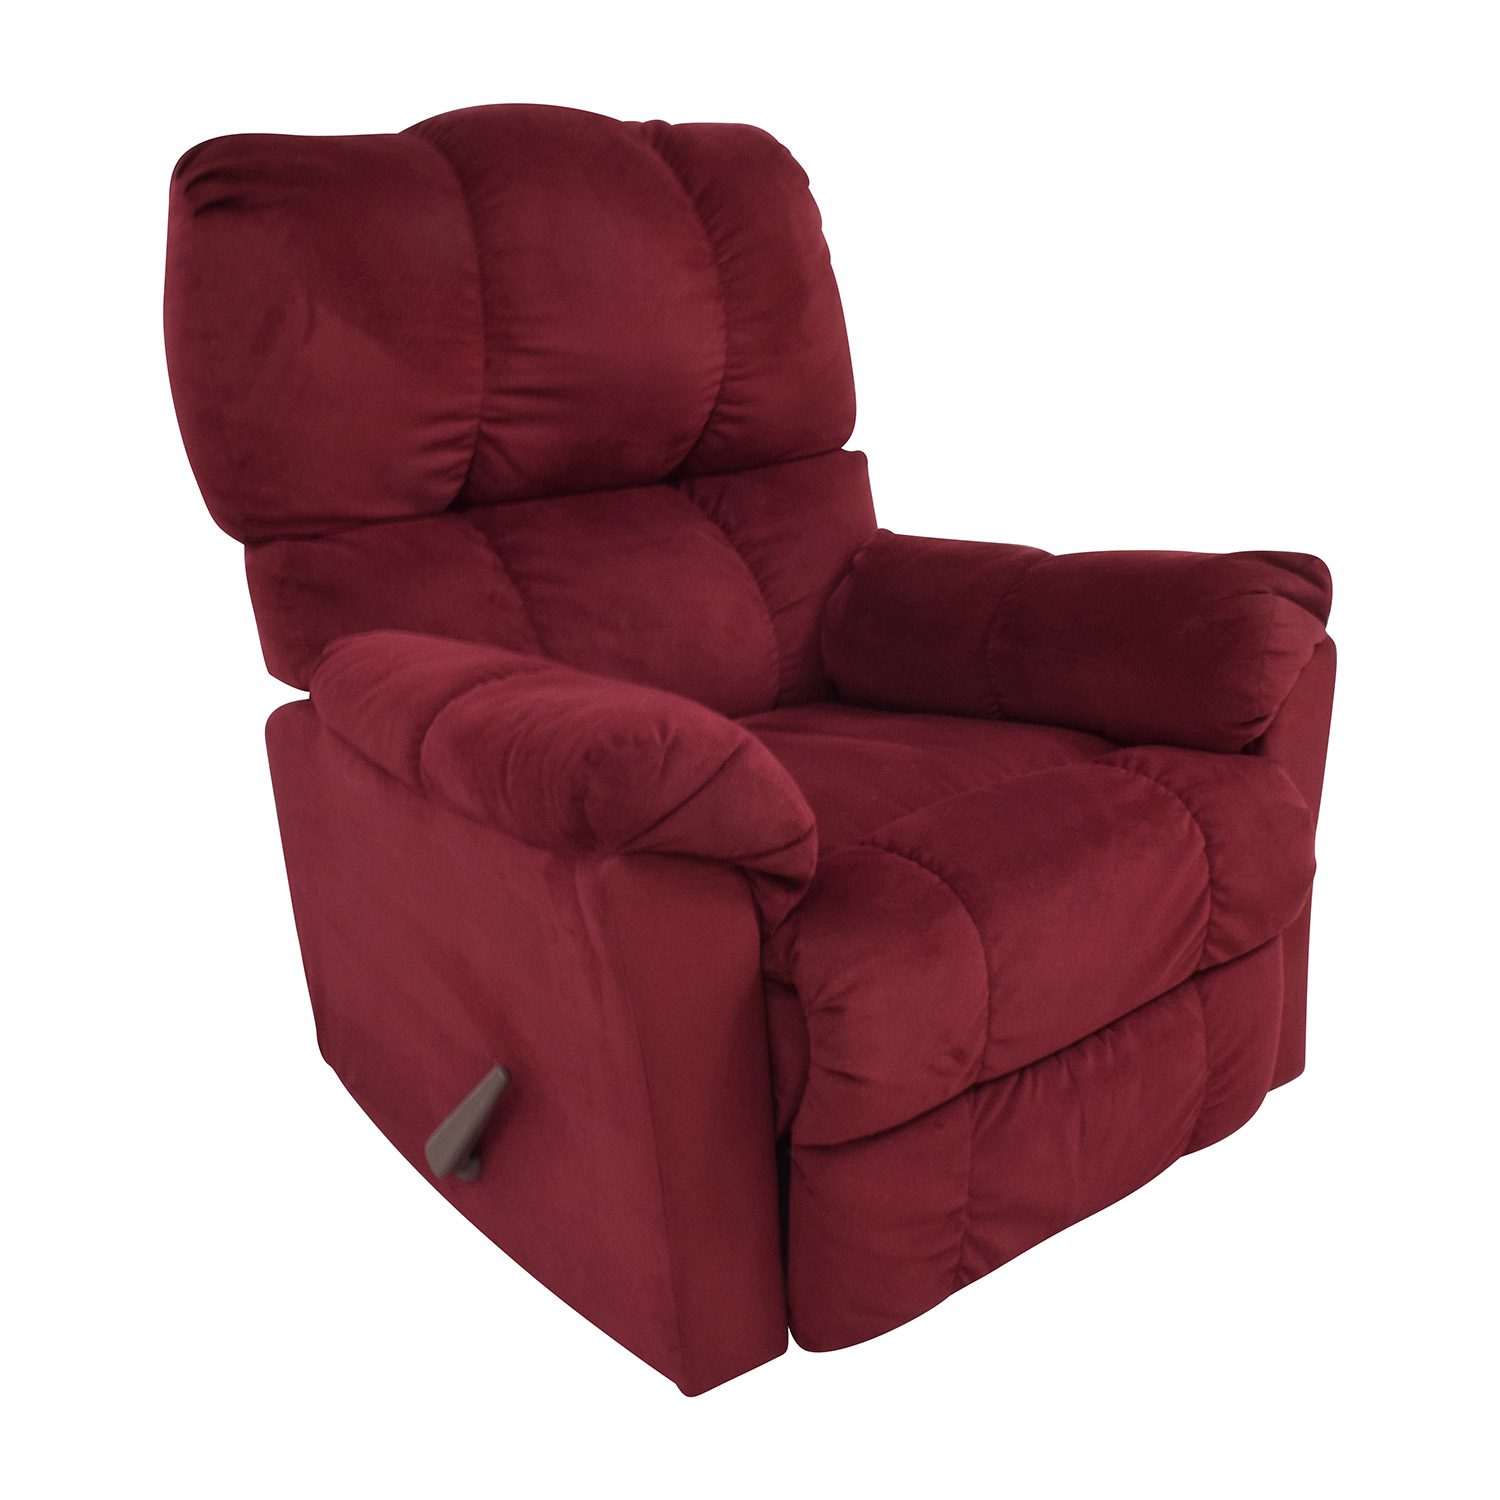 Macys Macys Red Recliner Arm Chair nj